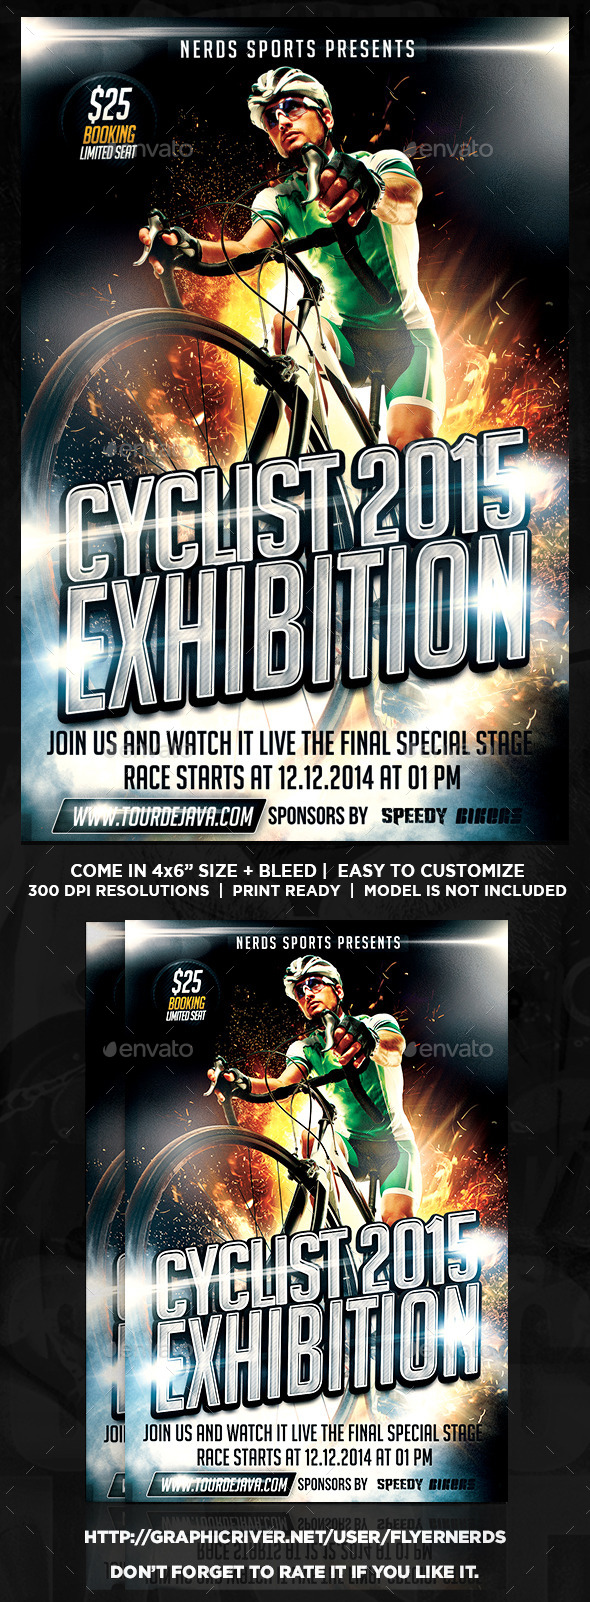 Cyclist Exhibition 2015 Sports Flyer - Sports Events